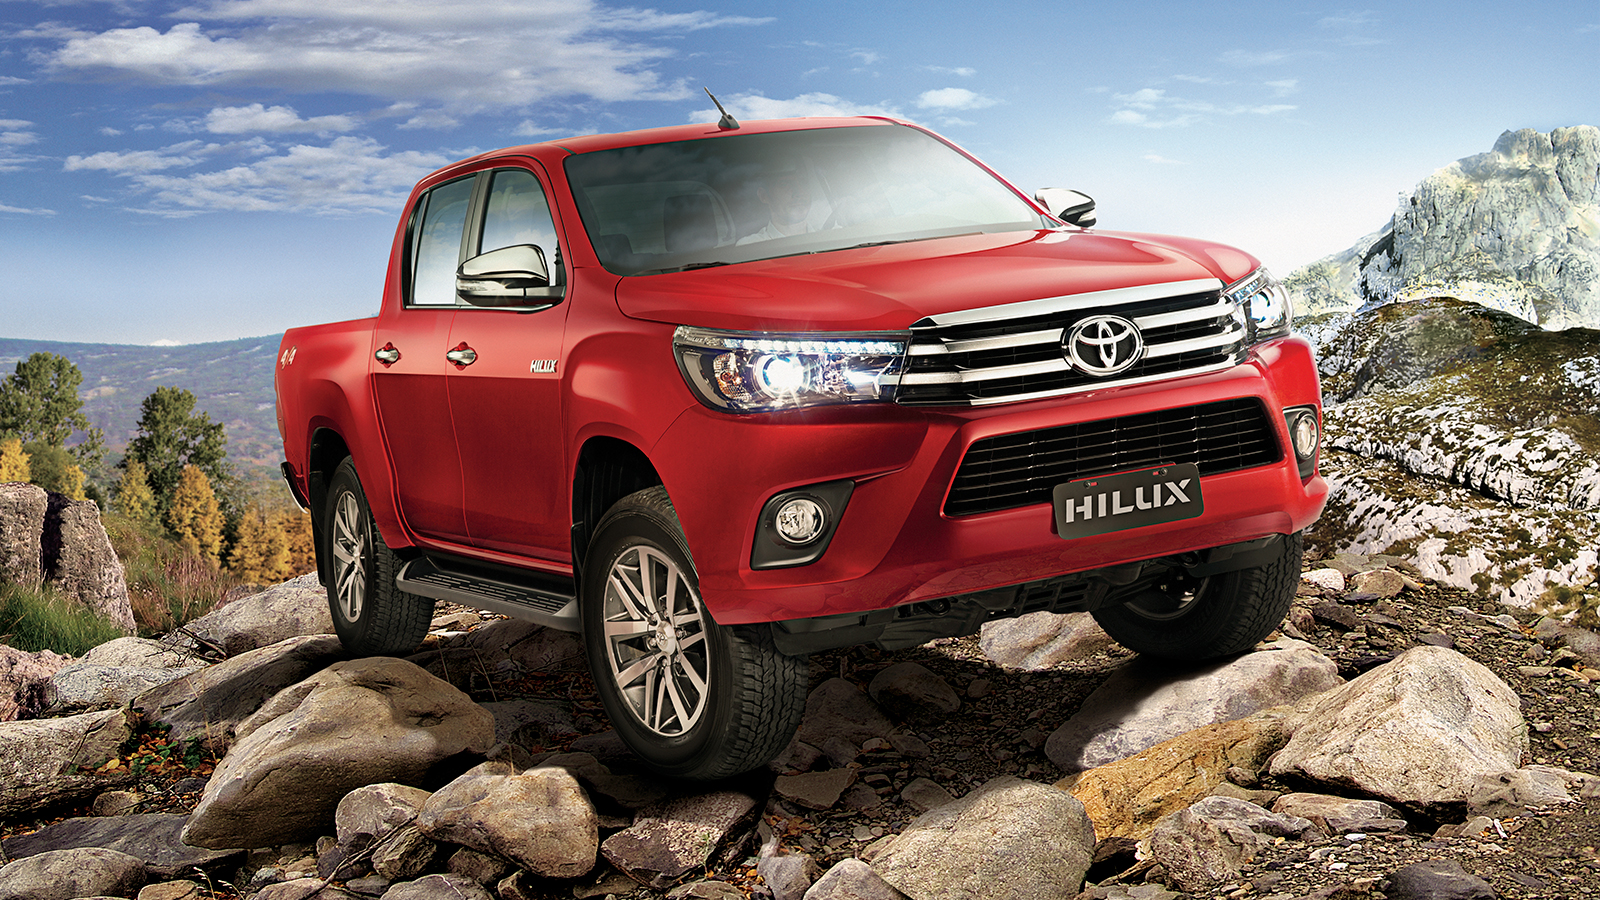 Images of Toyota Hilux | 1600x900